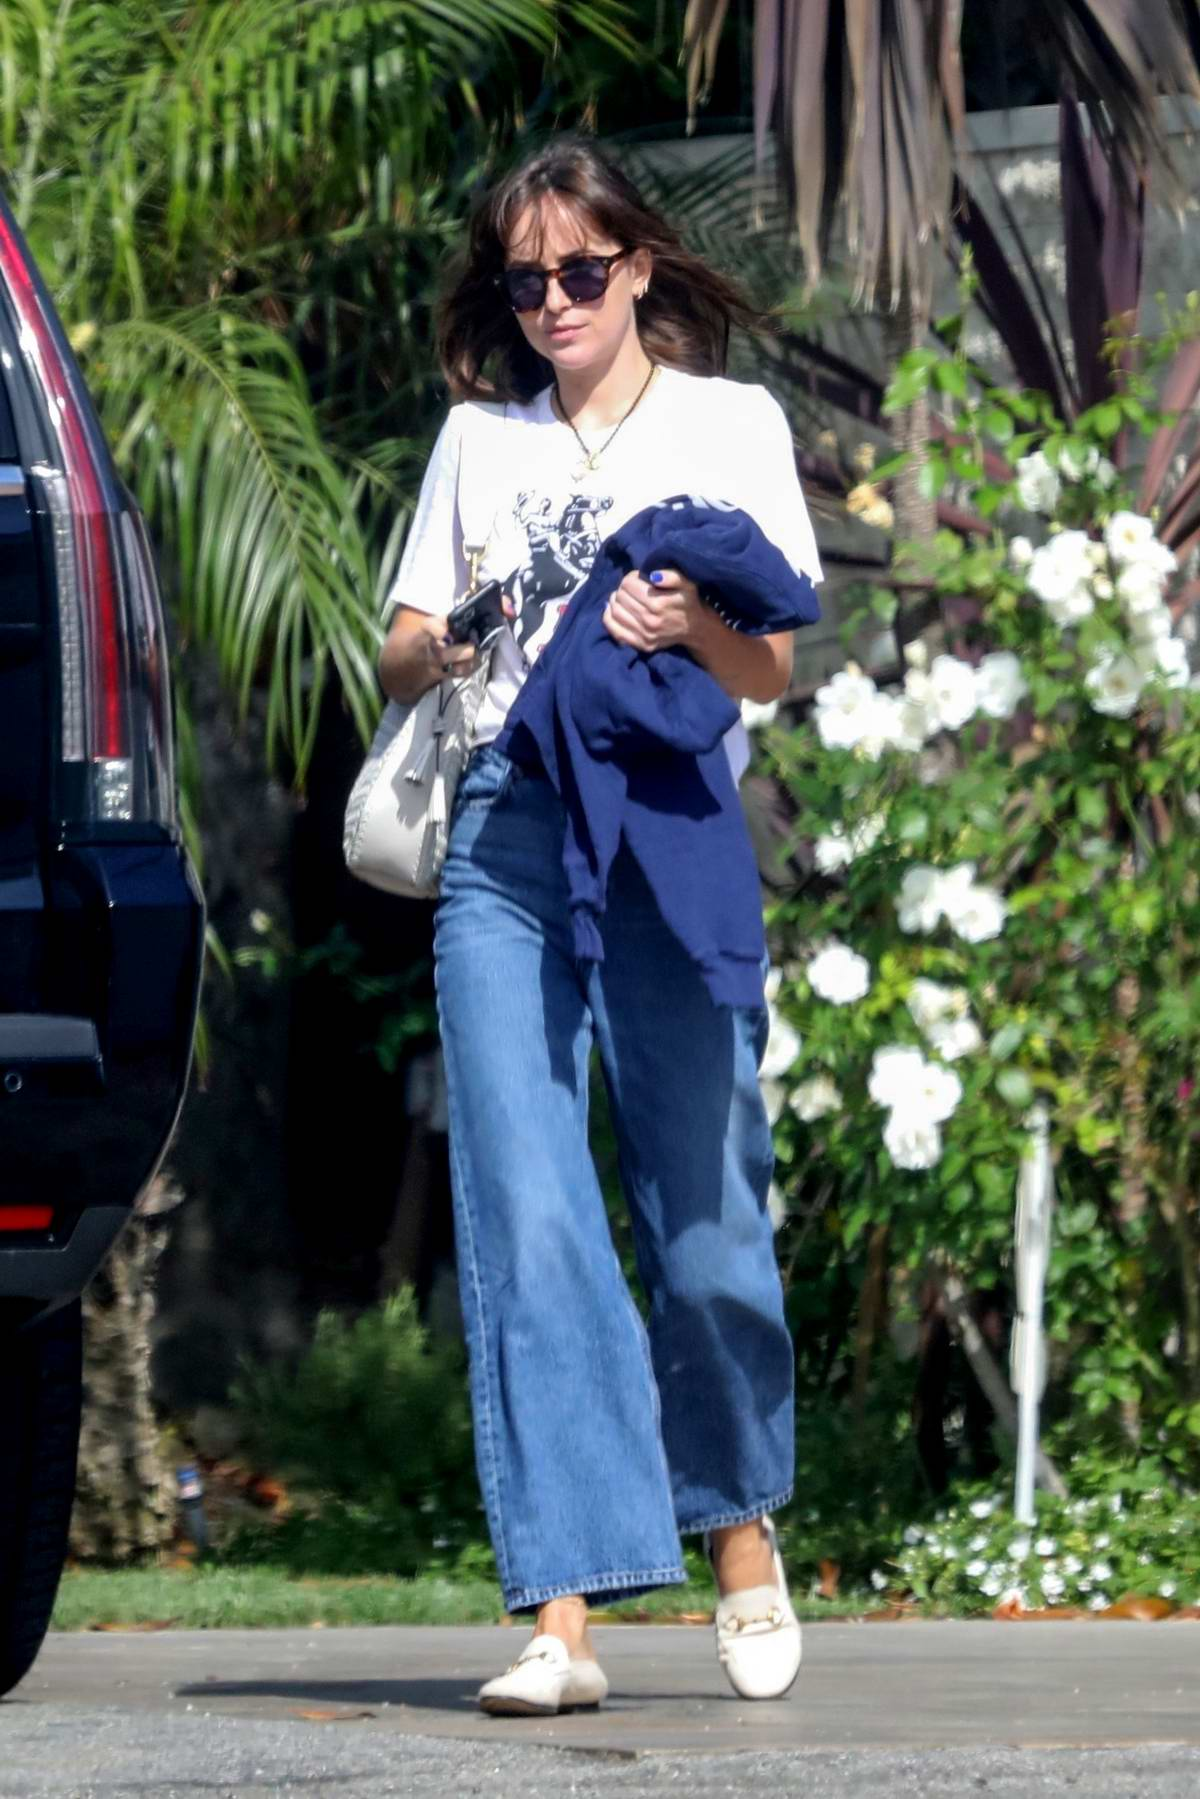 Dakota Johnson visits a friend for a beach side lunch in Malibu, California